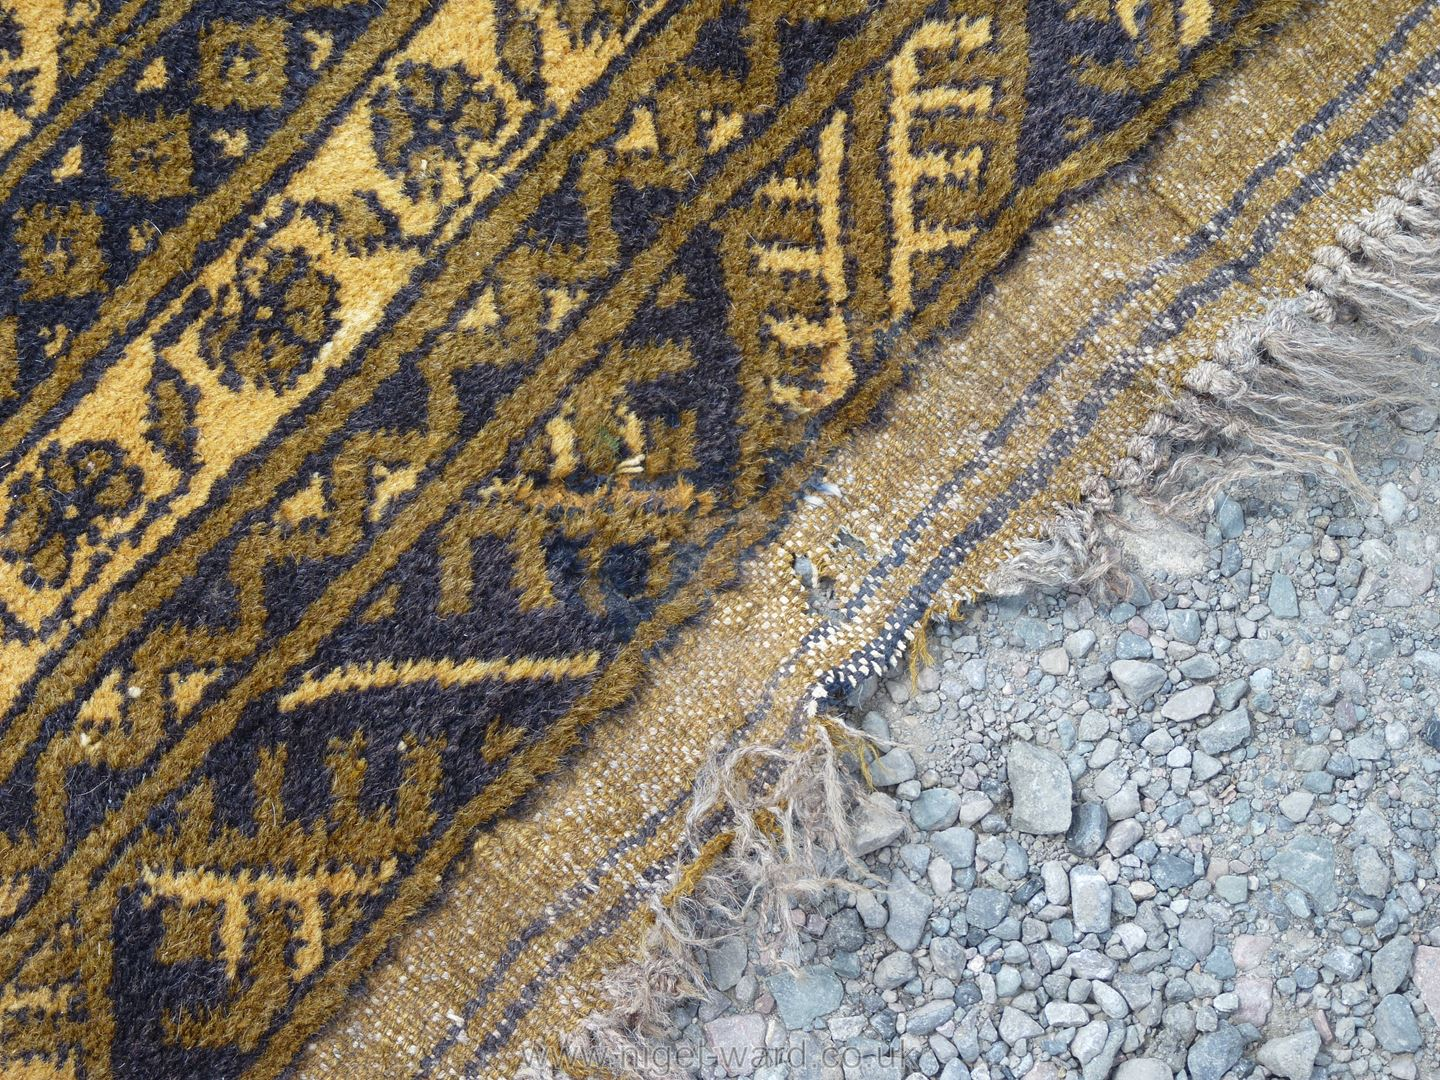 A large bordered, patterned and fringed Rug, gold ground with black geometric pattern, - Image 3 of 3